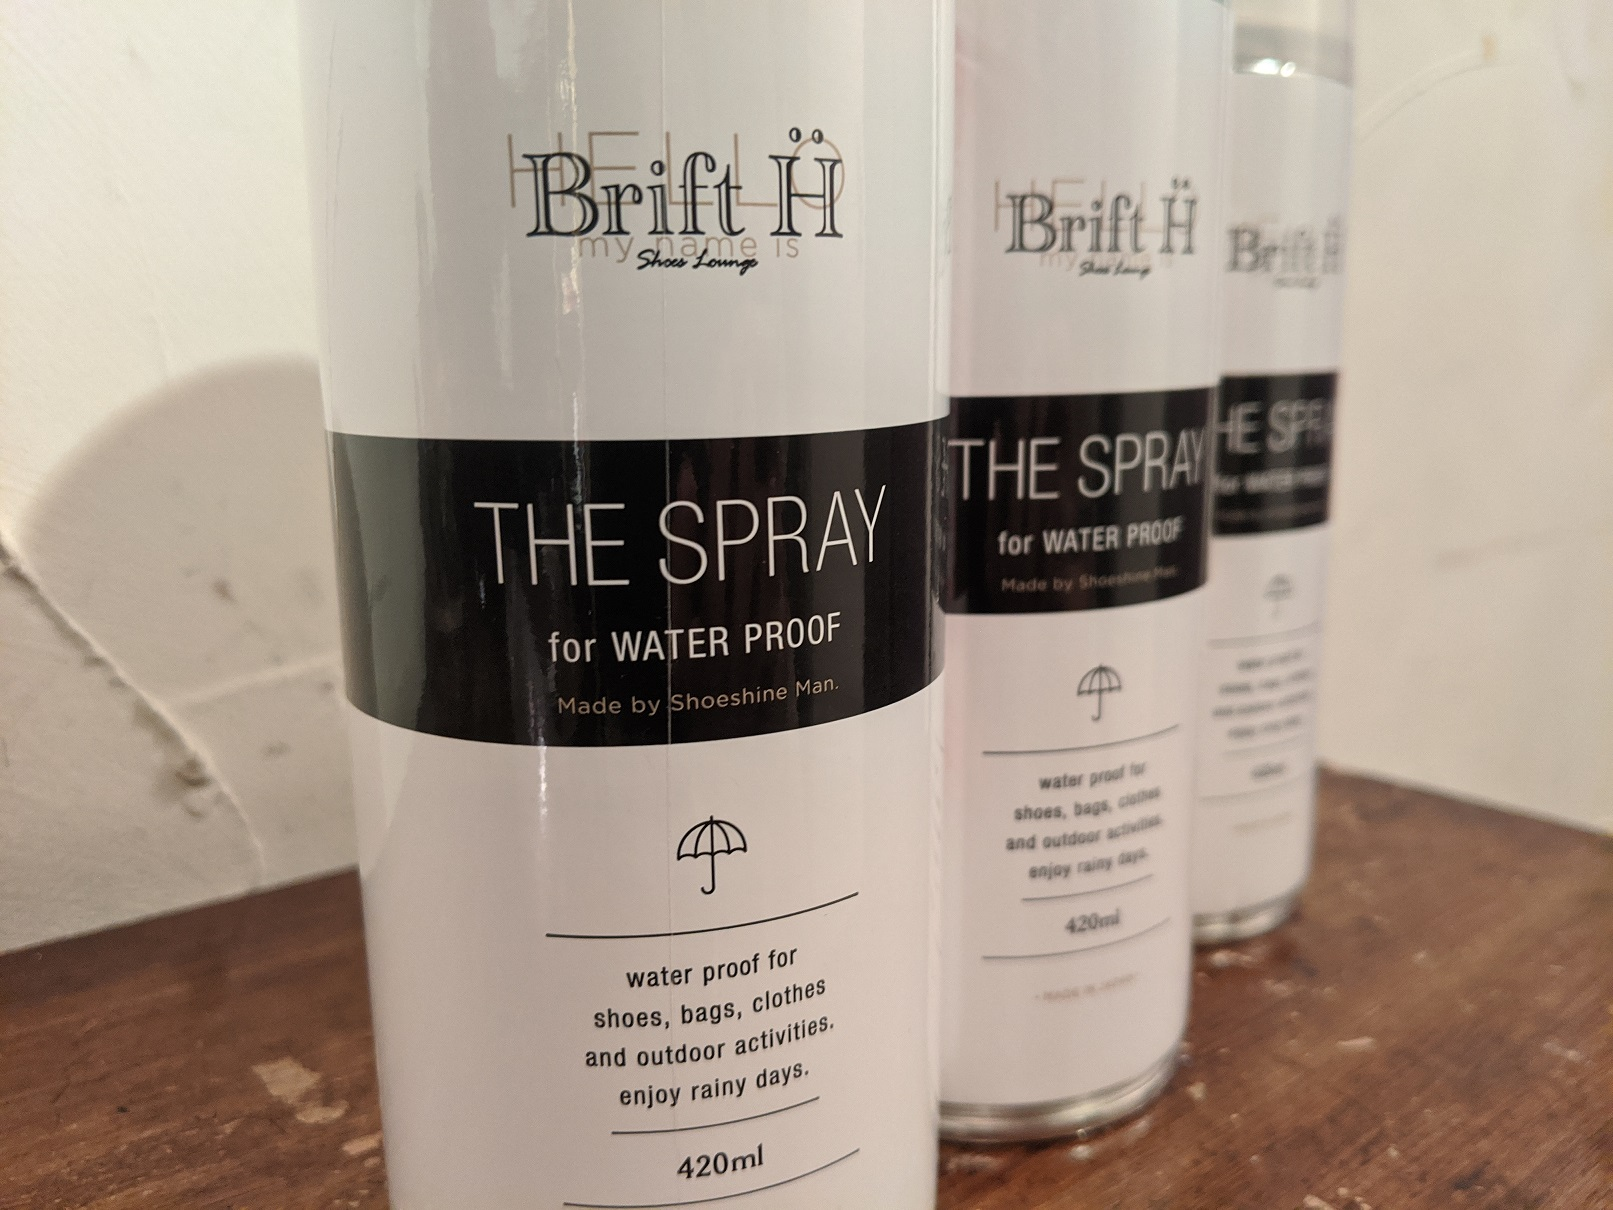 THE SPRAY